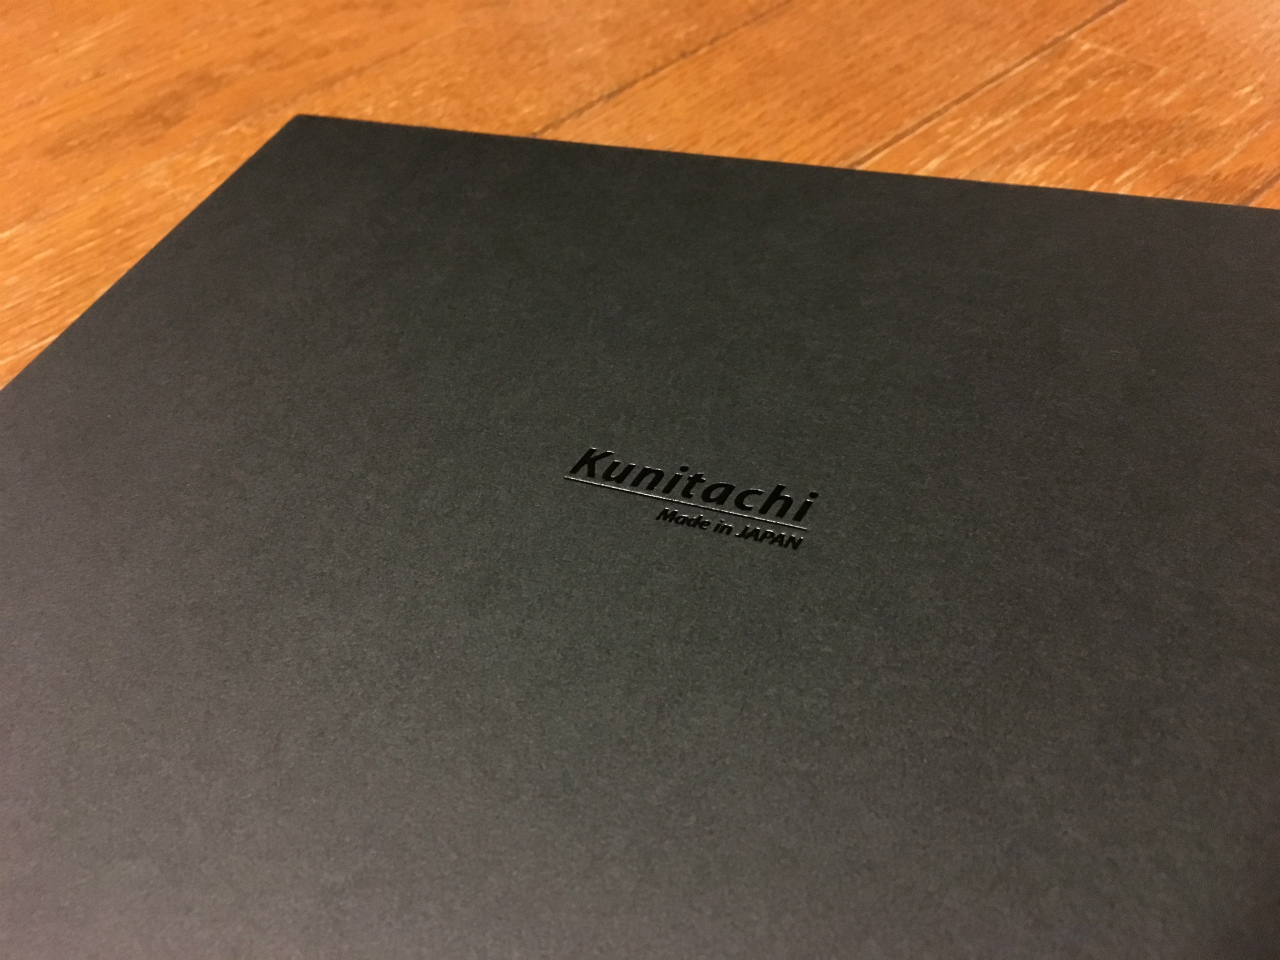 kunitachi-leather-sleeve-for-ipadpro-01